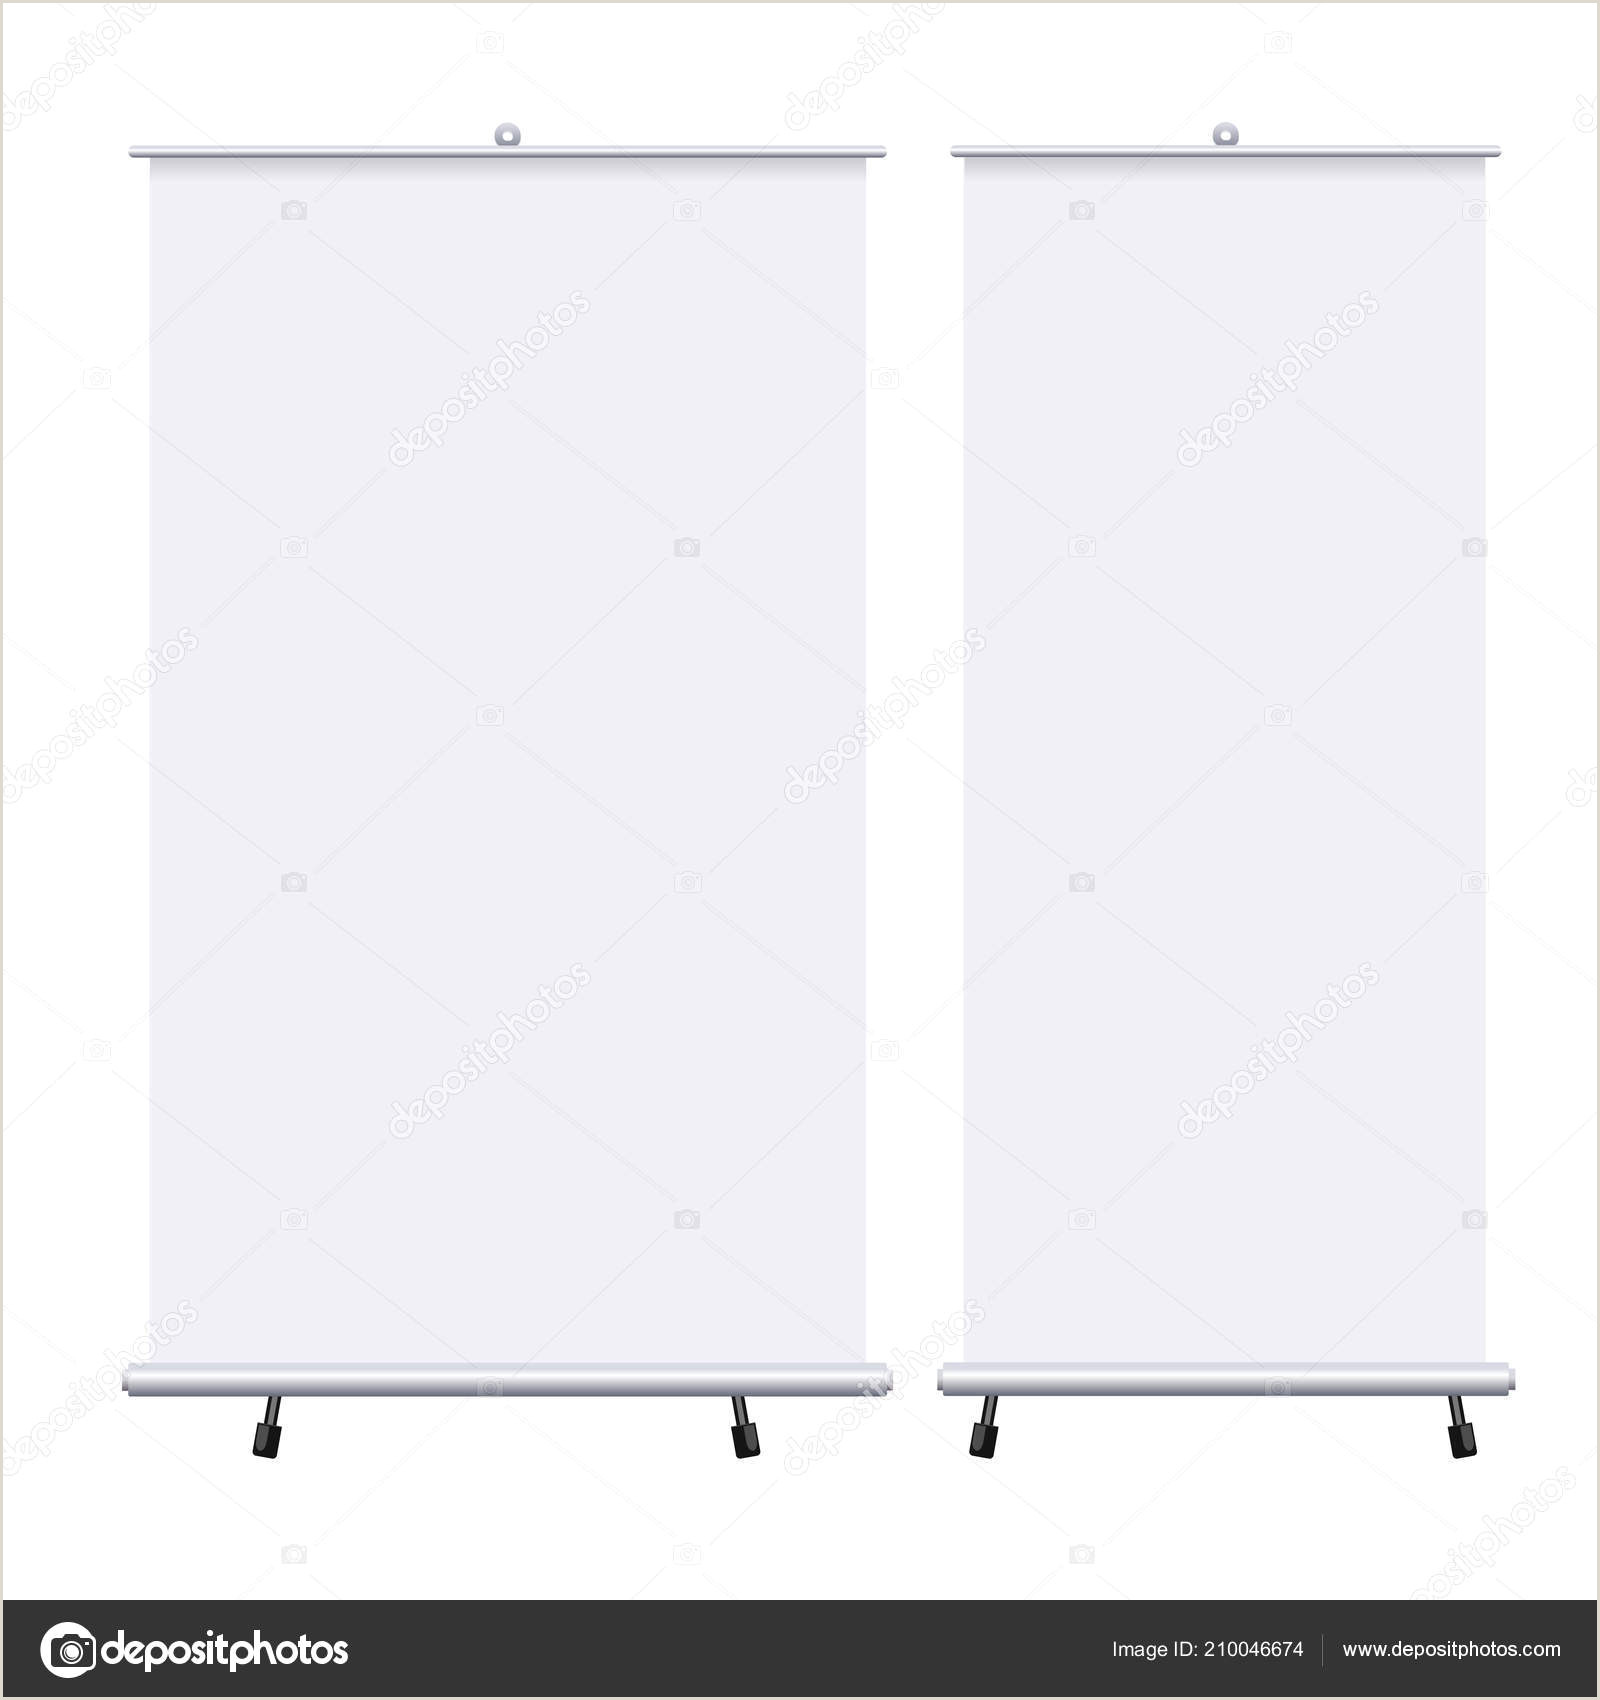 Pop Up Banner Images Blank Roll Up Banners Set Isolated On The White Background Design Template Blank Pop Up Banner For Presentation Corporate Training And Briefing